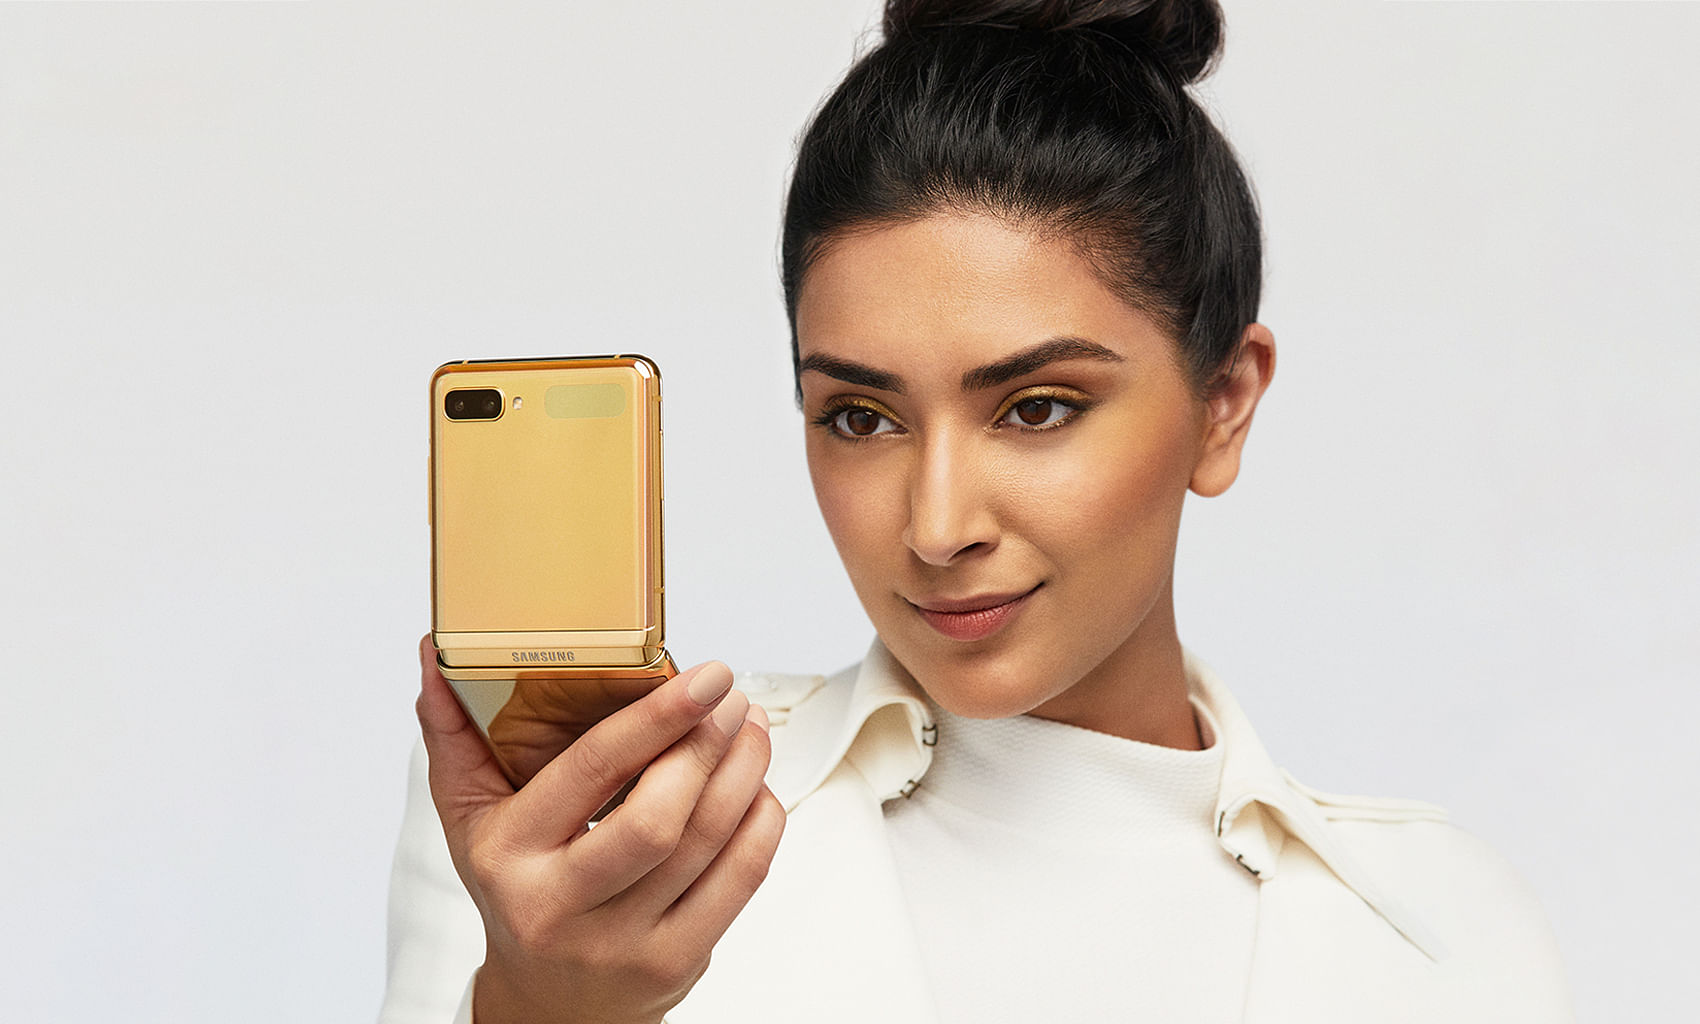 6 ways the new Mirror Gold Samsung Galaxy Z Flip can provide new  experiences in different phases of life, Tech News & Top Stories - The  Straits Times